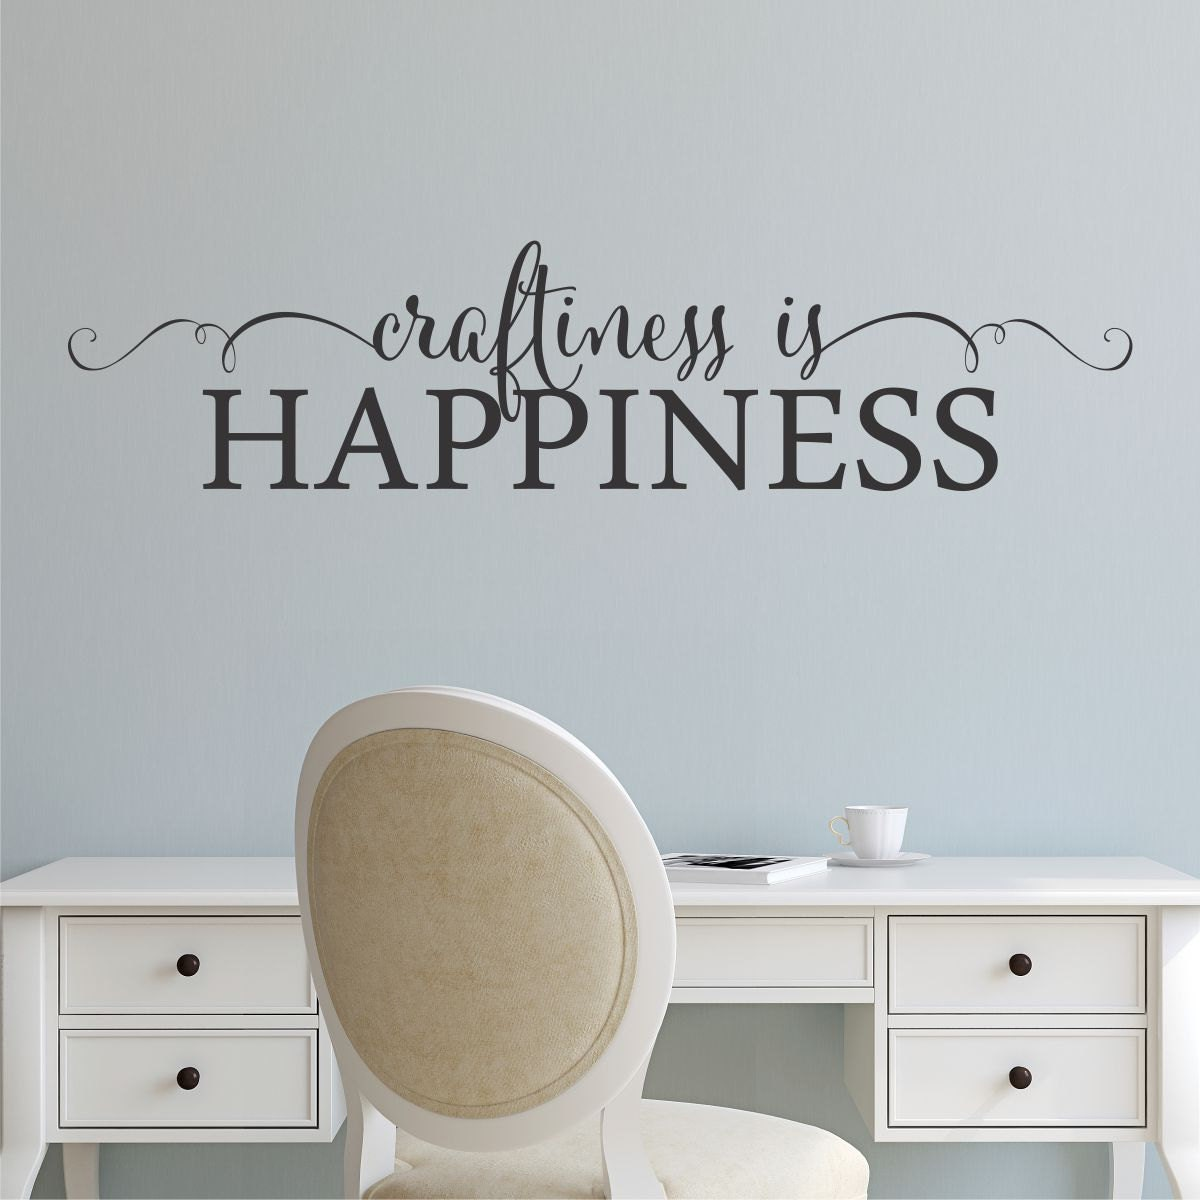 Crafting Quotes Fair Wall Quote Decal Craftiness Is Happiness Craft Room Creative